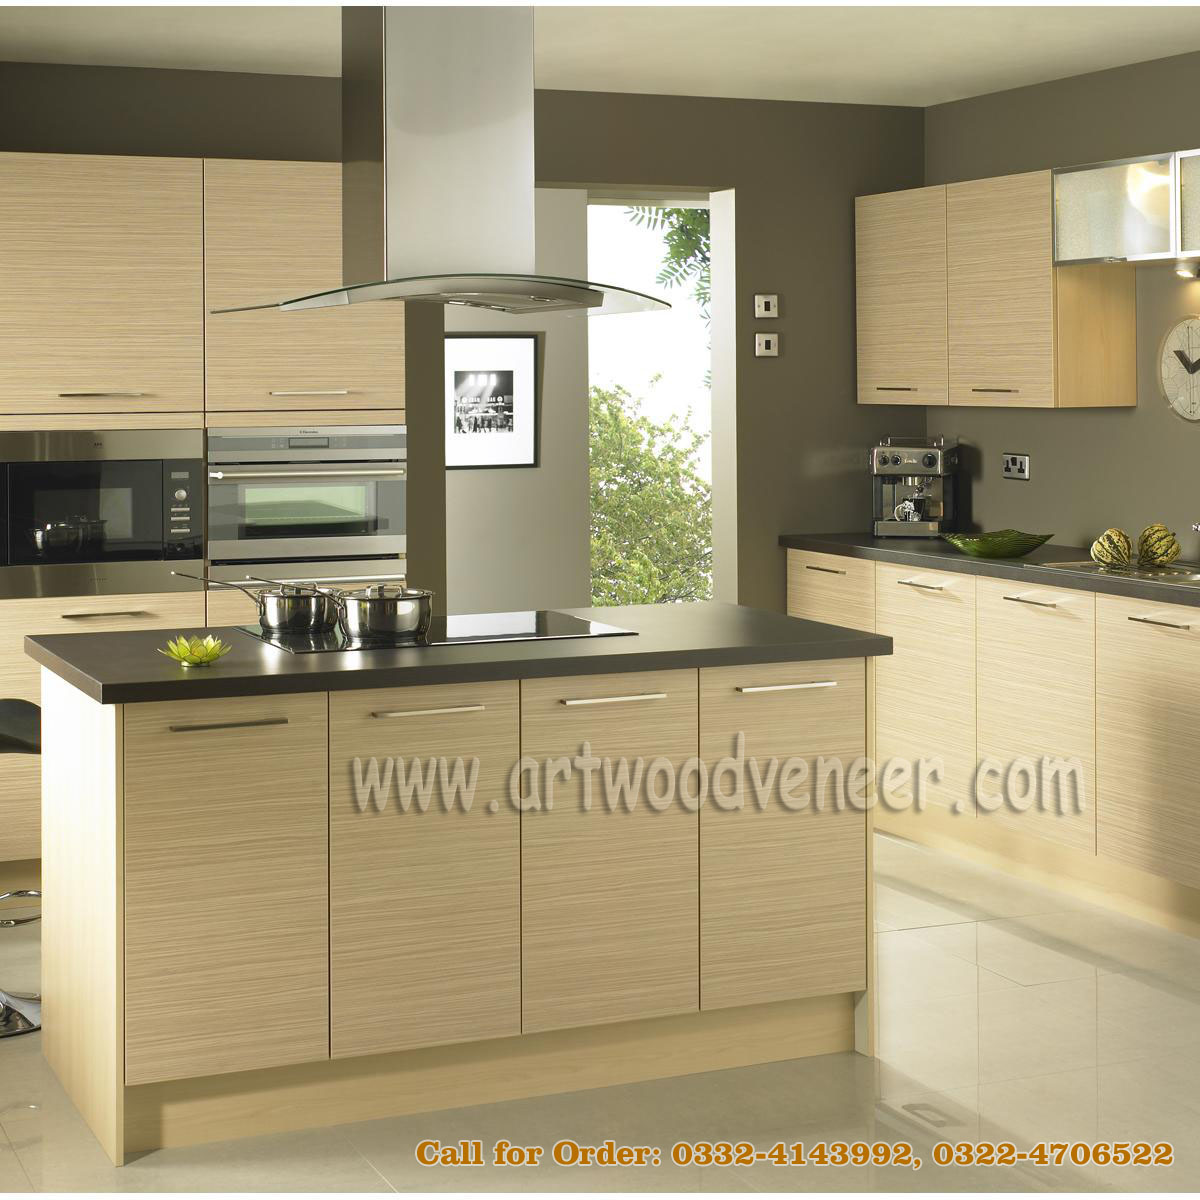 Modern Kitchen Cabinets For Sale In Lahore Kitchen Manufacturer